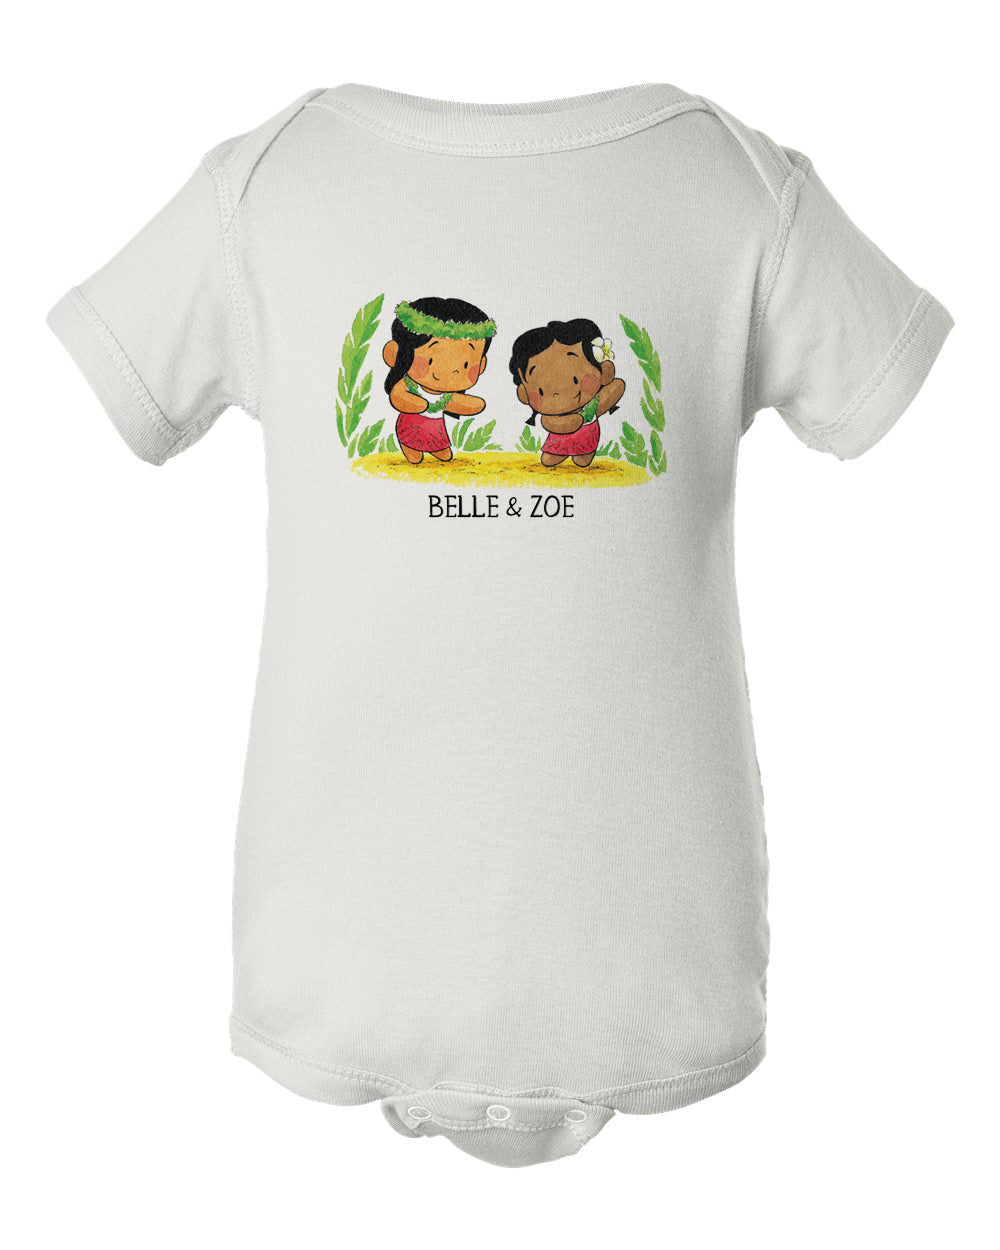 Belle & Zoe MAY DAY HULA INFANT Onesie